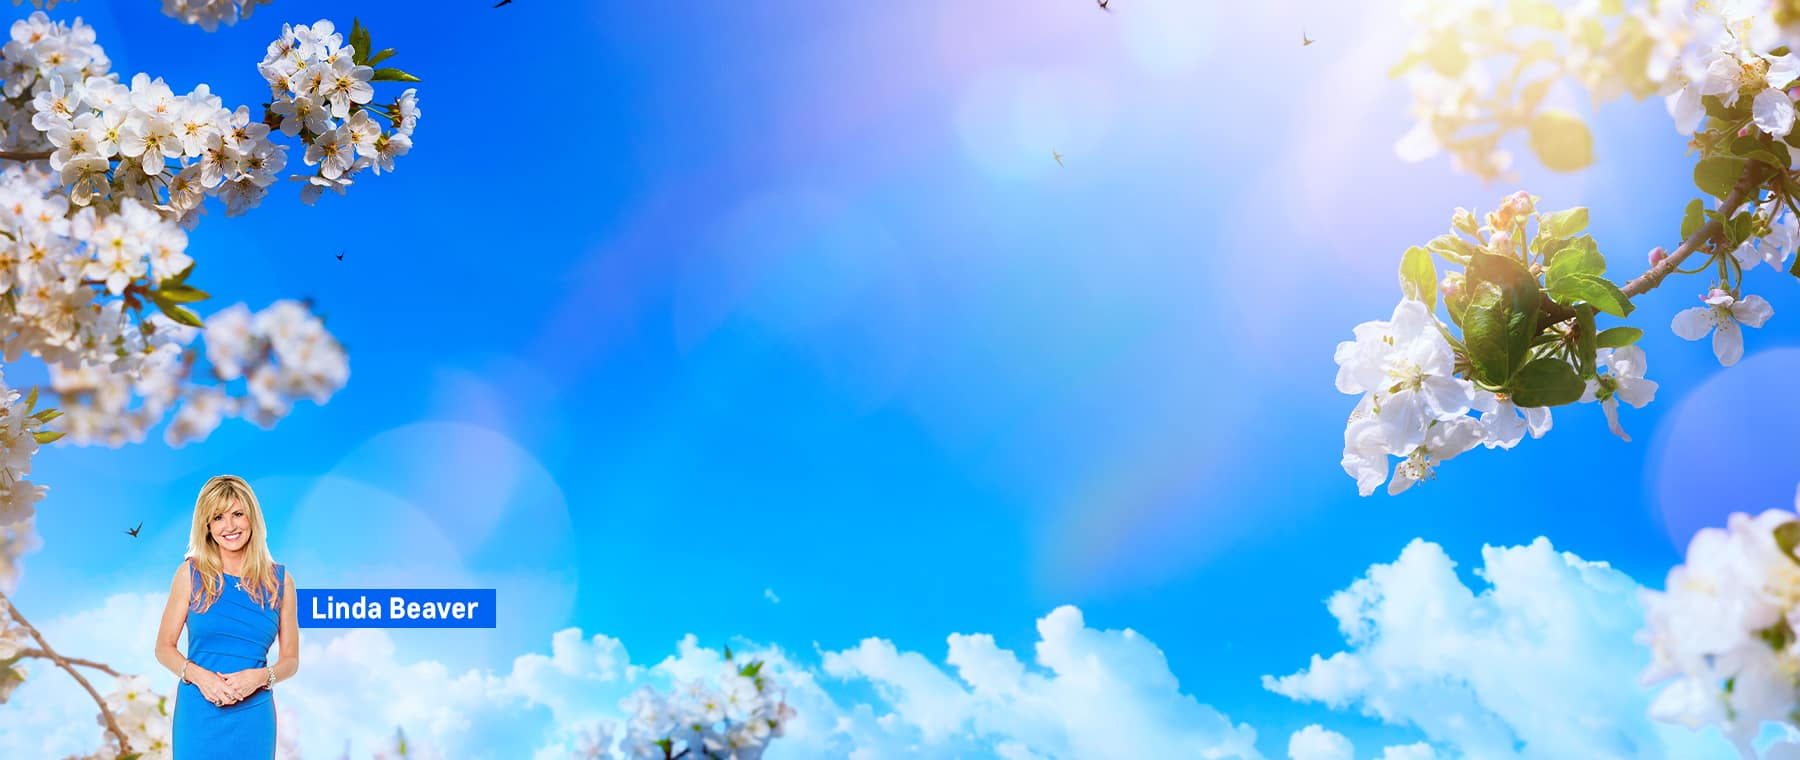 Spring/Summer Background